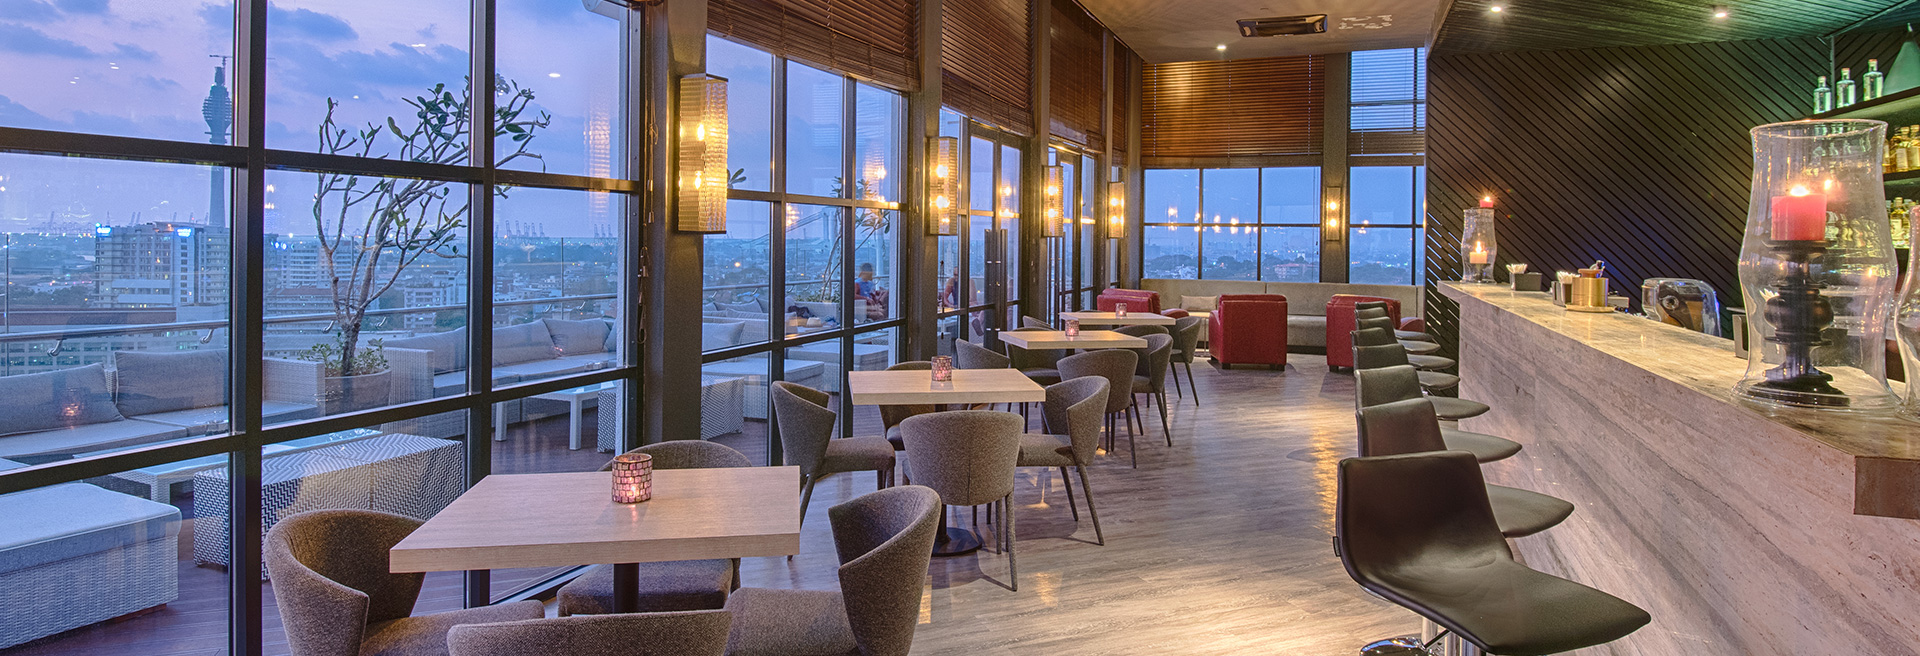 Luxury Dining At Rooftop Restaurant